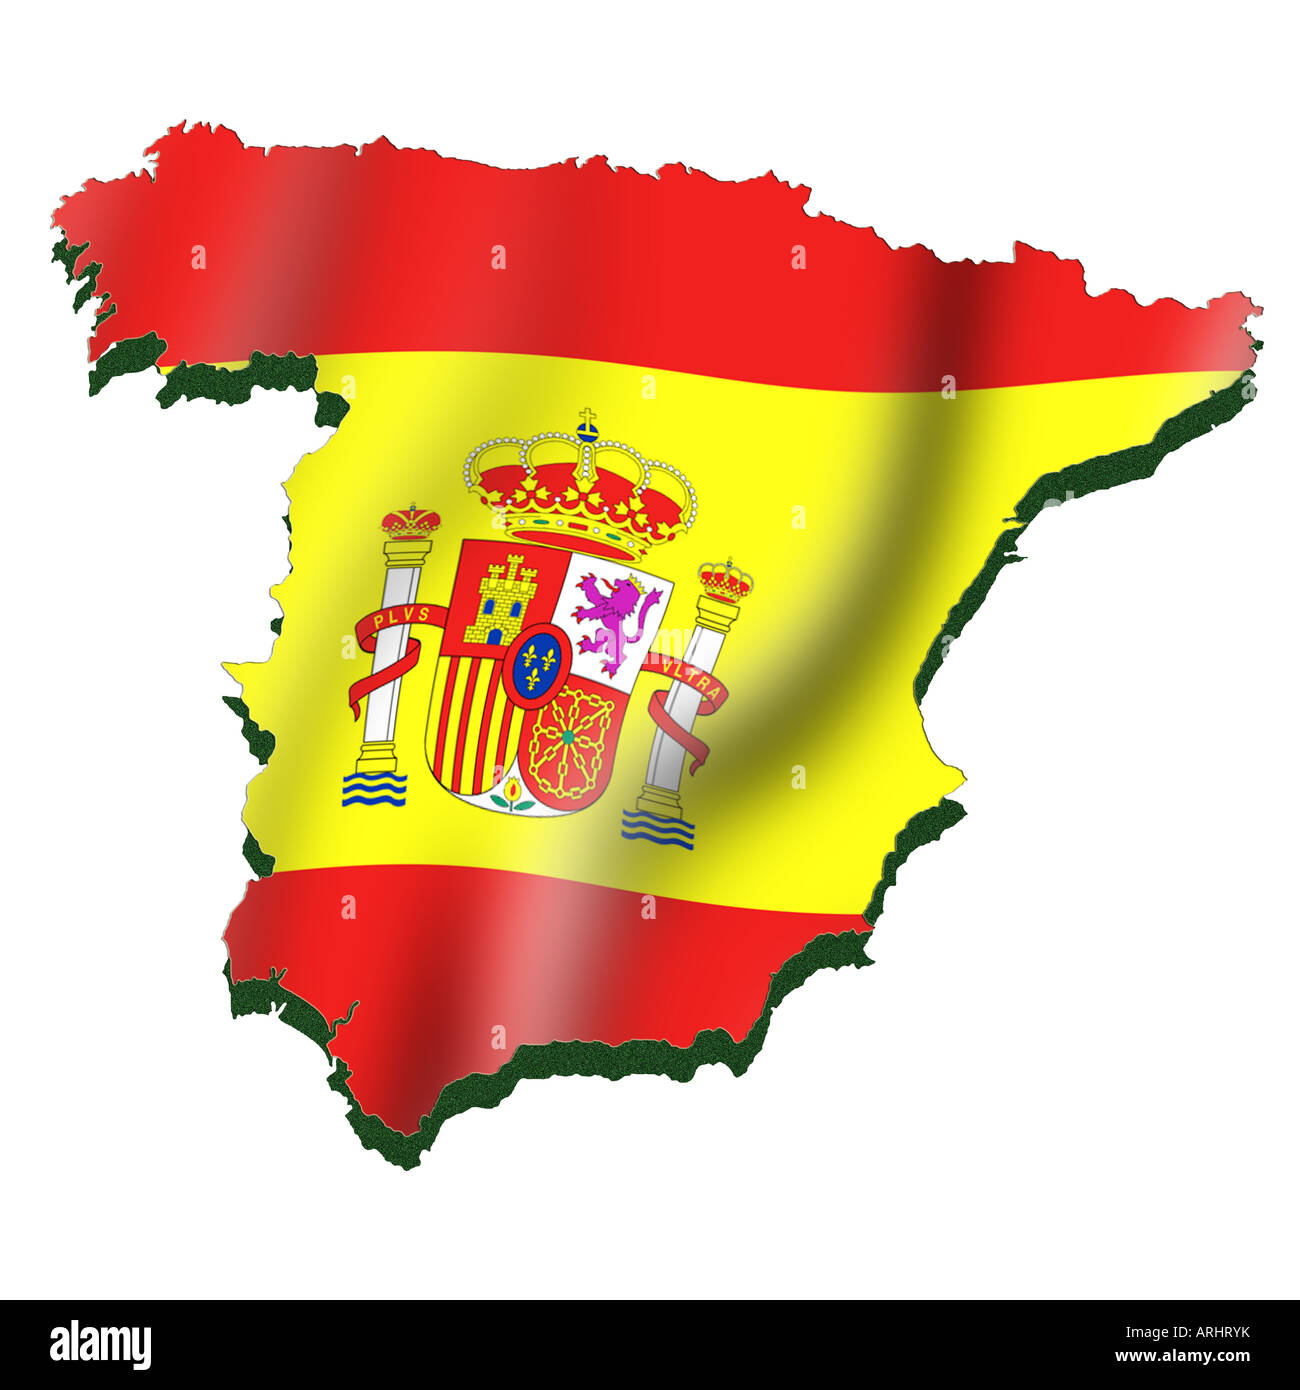 Outline Map And Flag Of Spain Stock Photo 16061238 Alamy